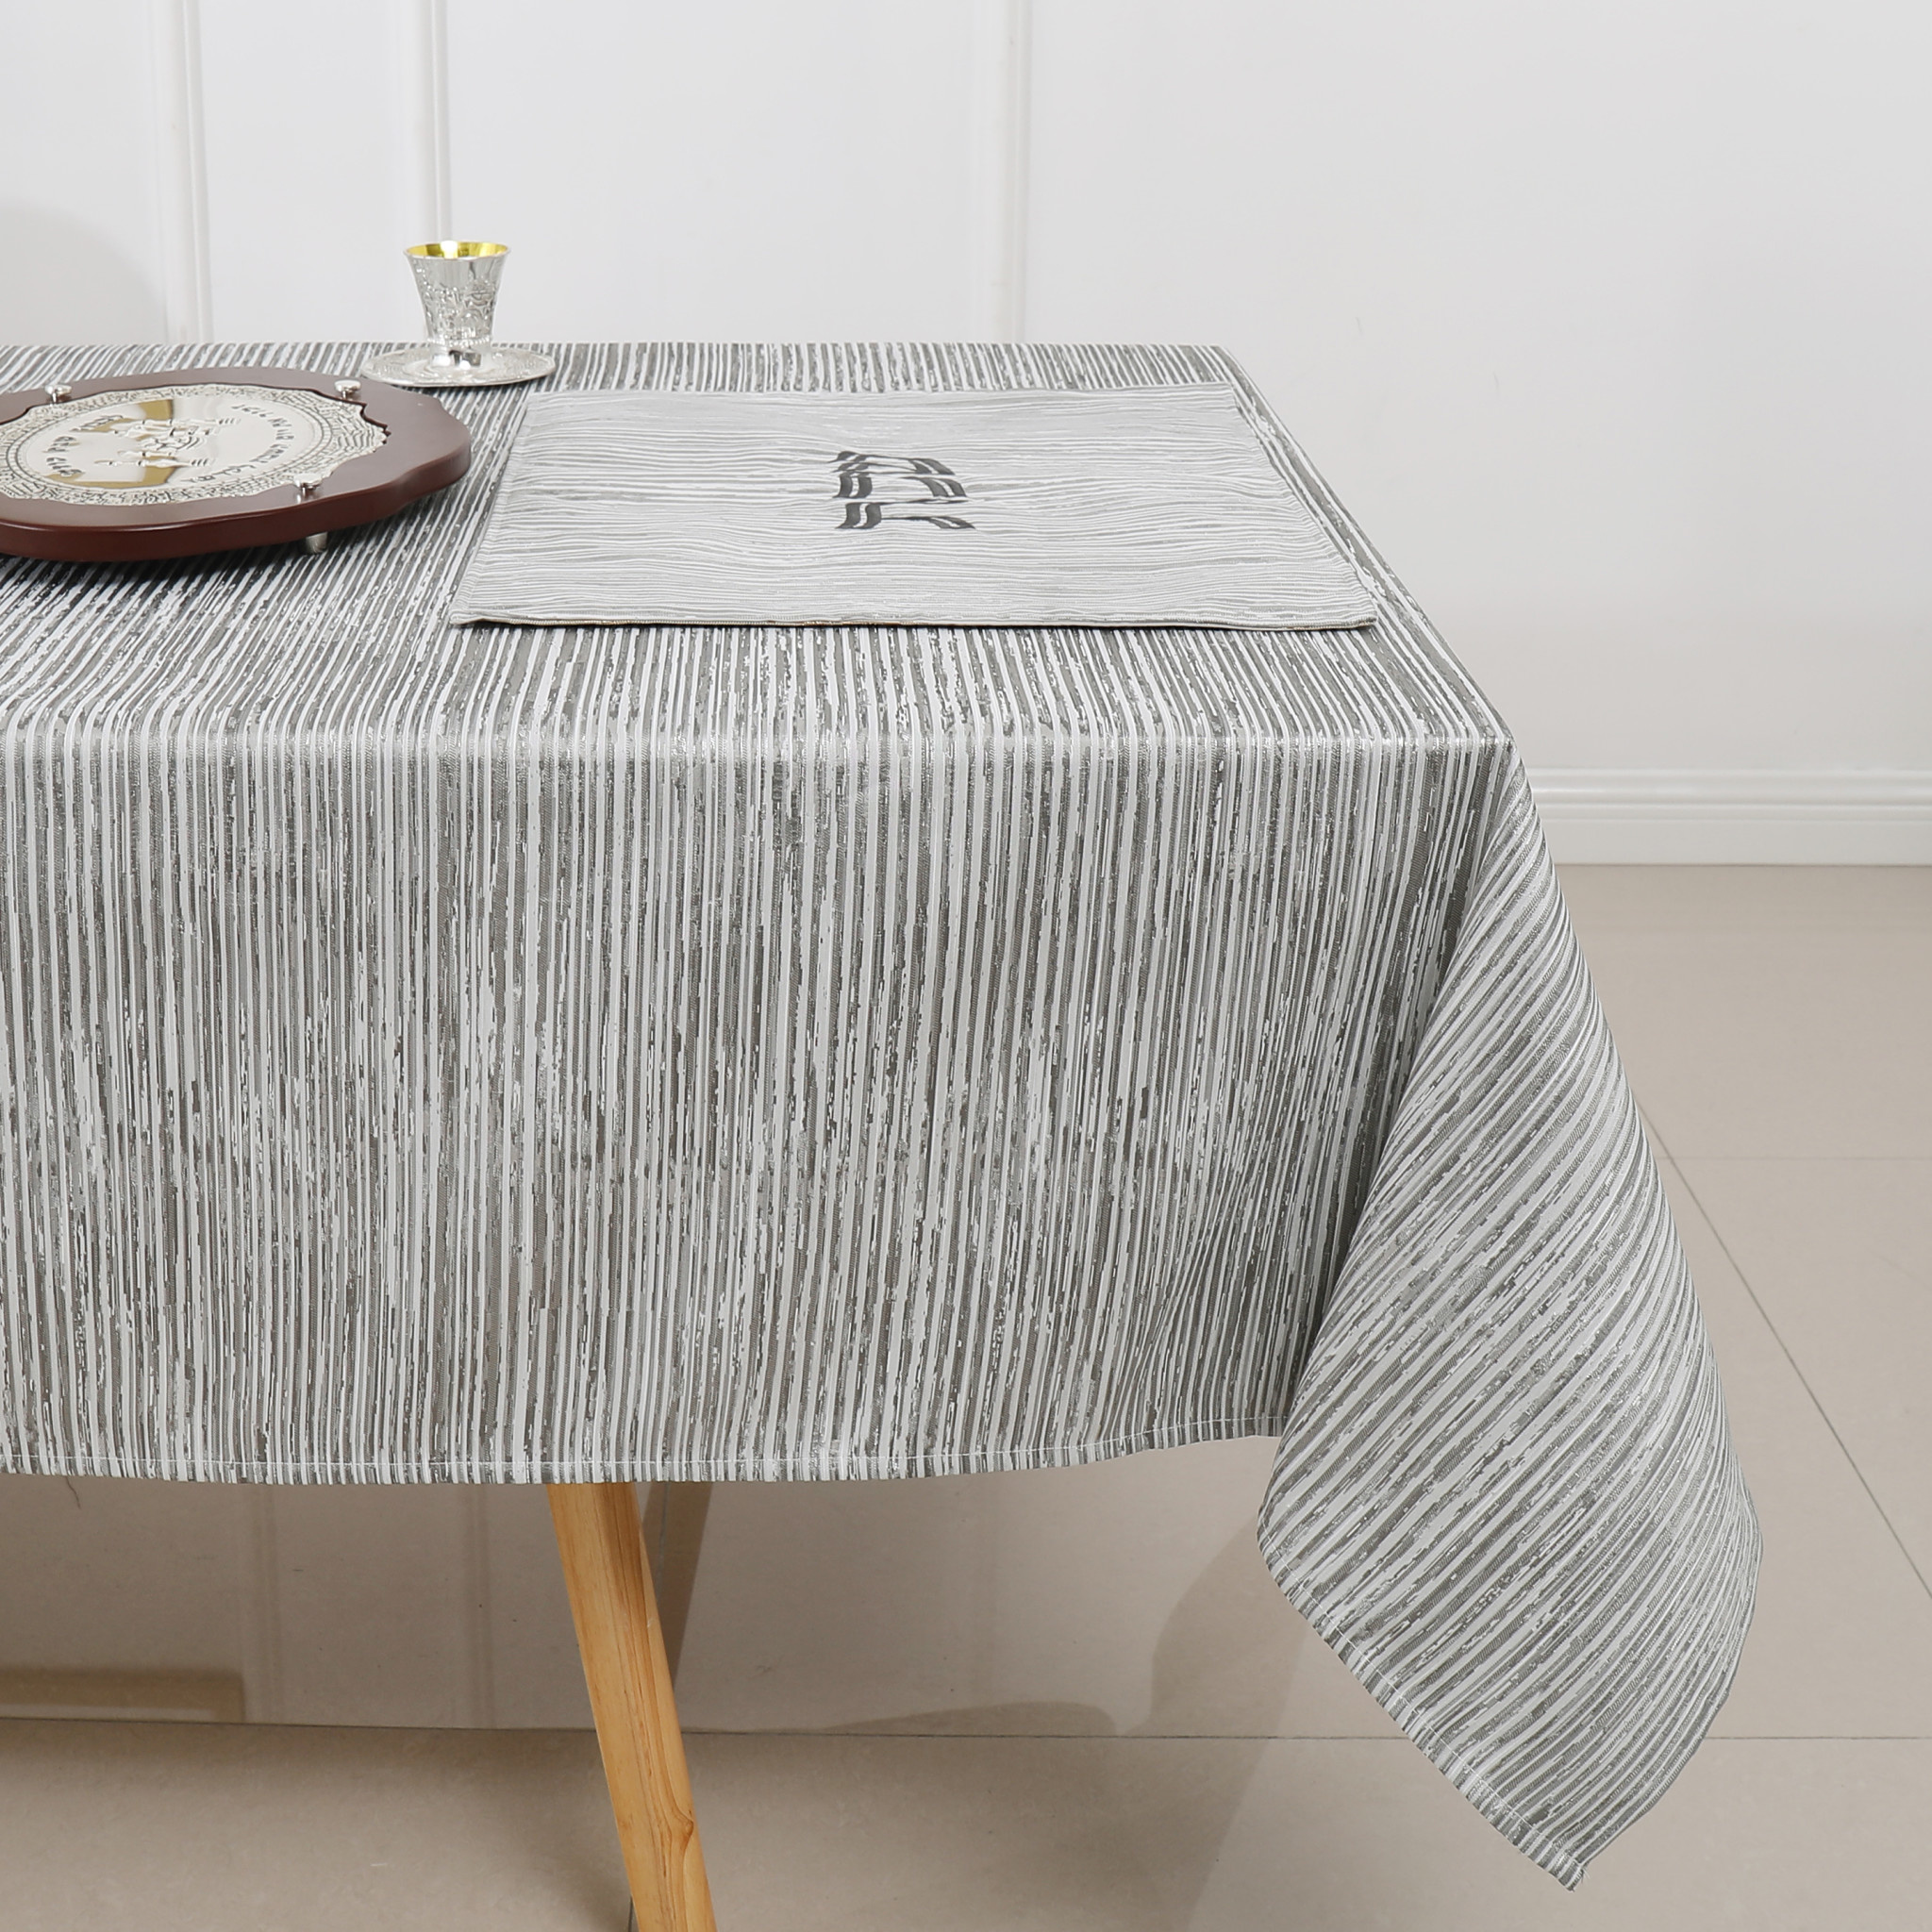 TC1204- 70 x 108 Jacquard Silver Lines Tablecloth